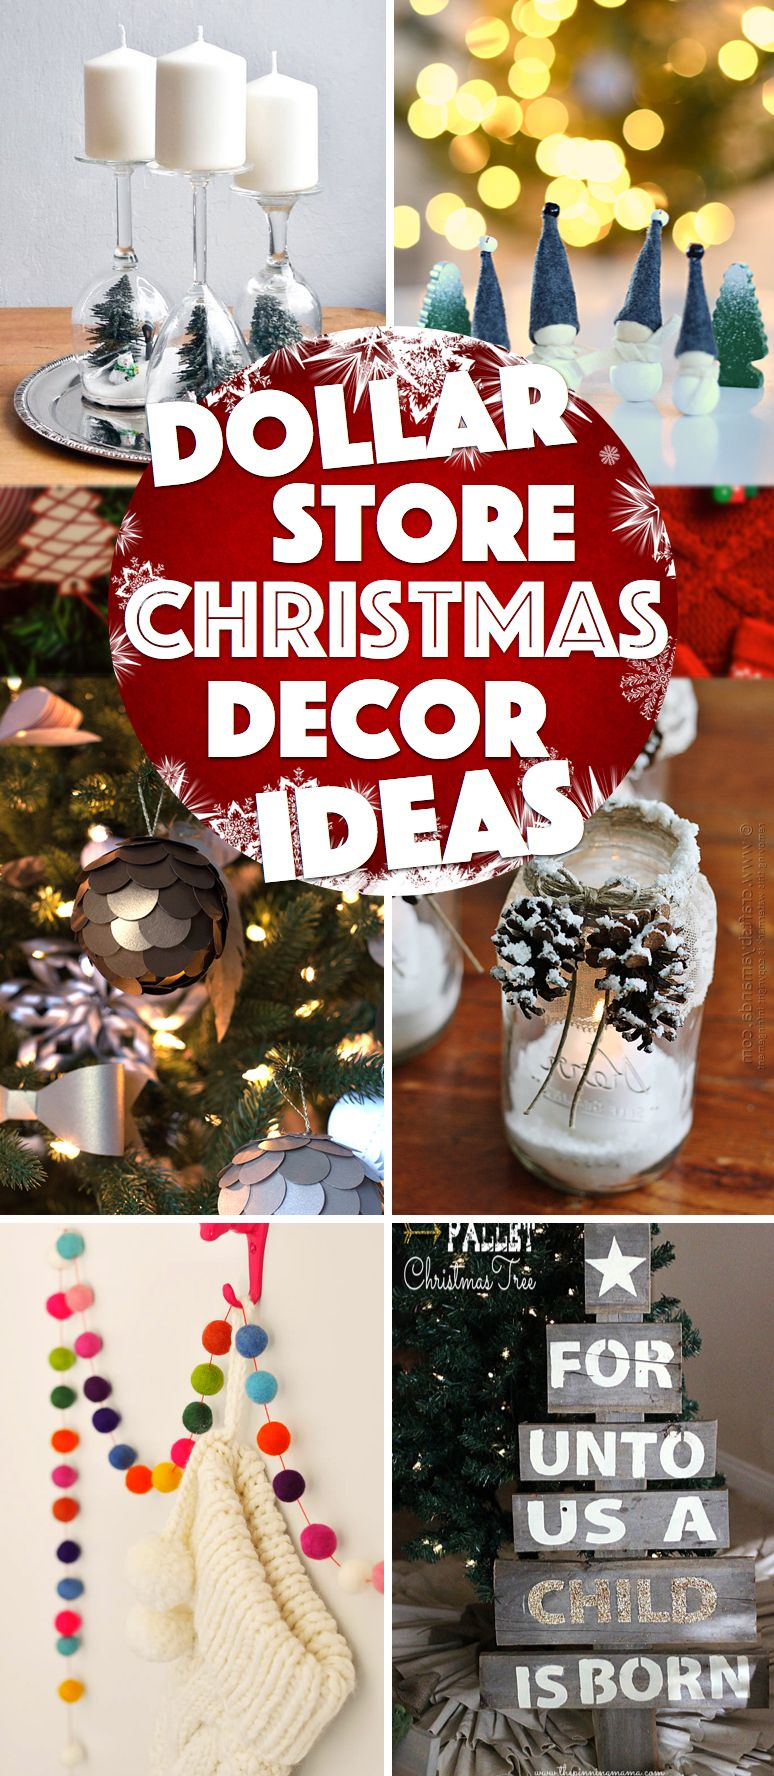 39 Oh So Dollar Store DIY Christmas Decor Ideas